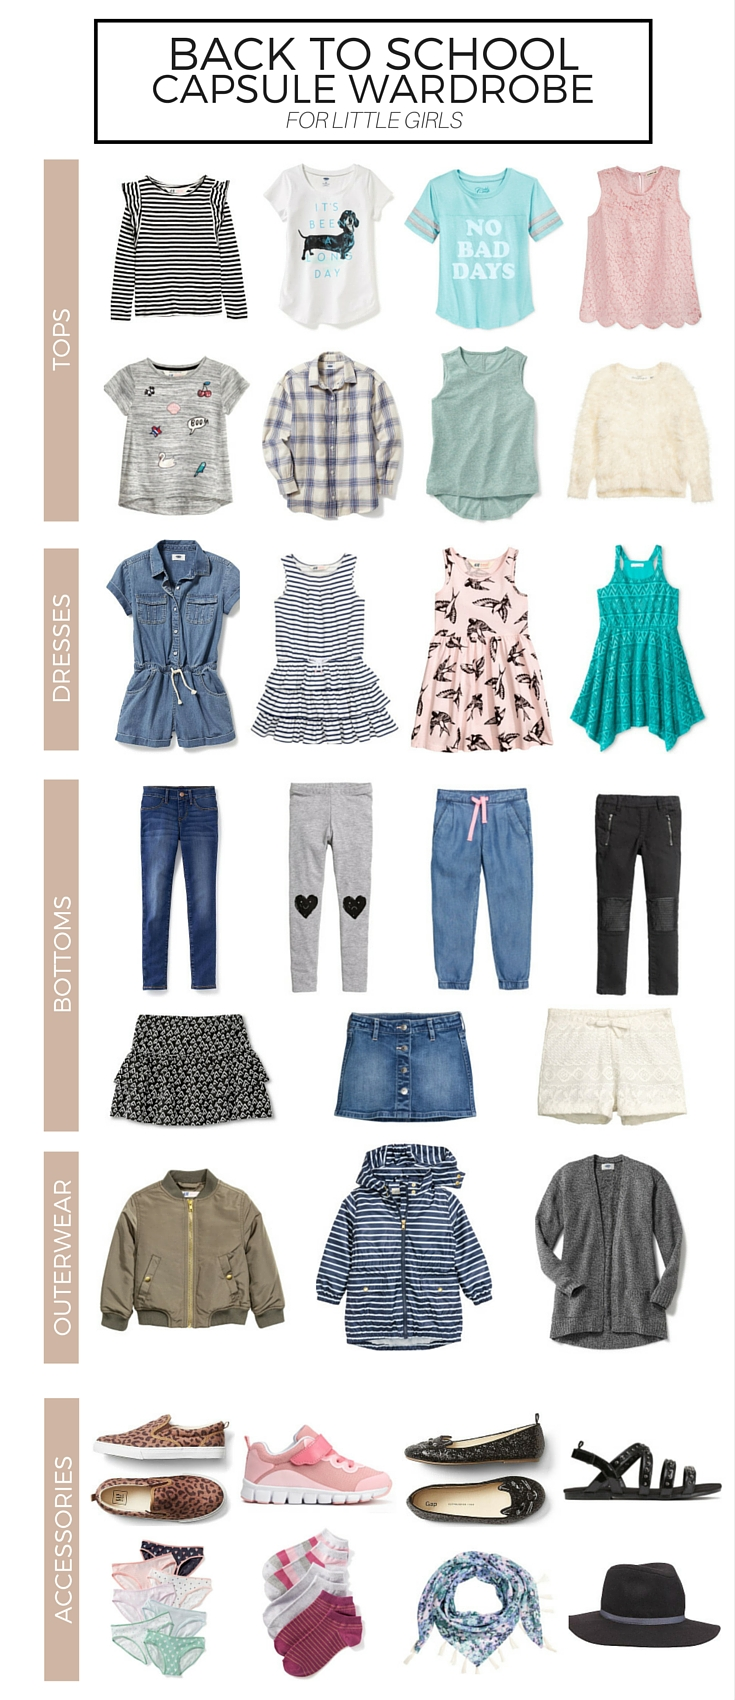 64efb88c818e5 ... make your life much easier this back to school season. Take a peek at  the capsule collections below for some inspiration, and feel free to shop  the ...